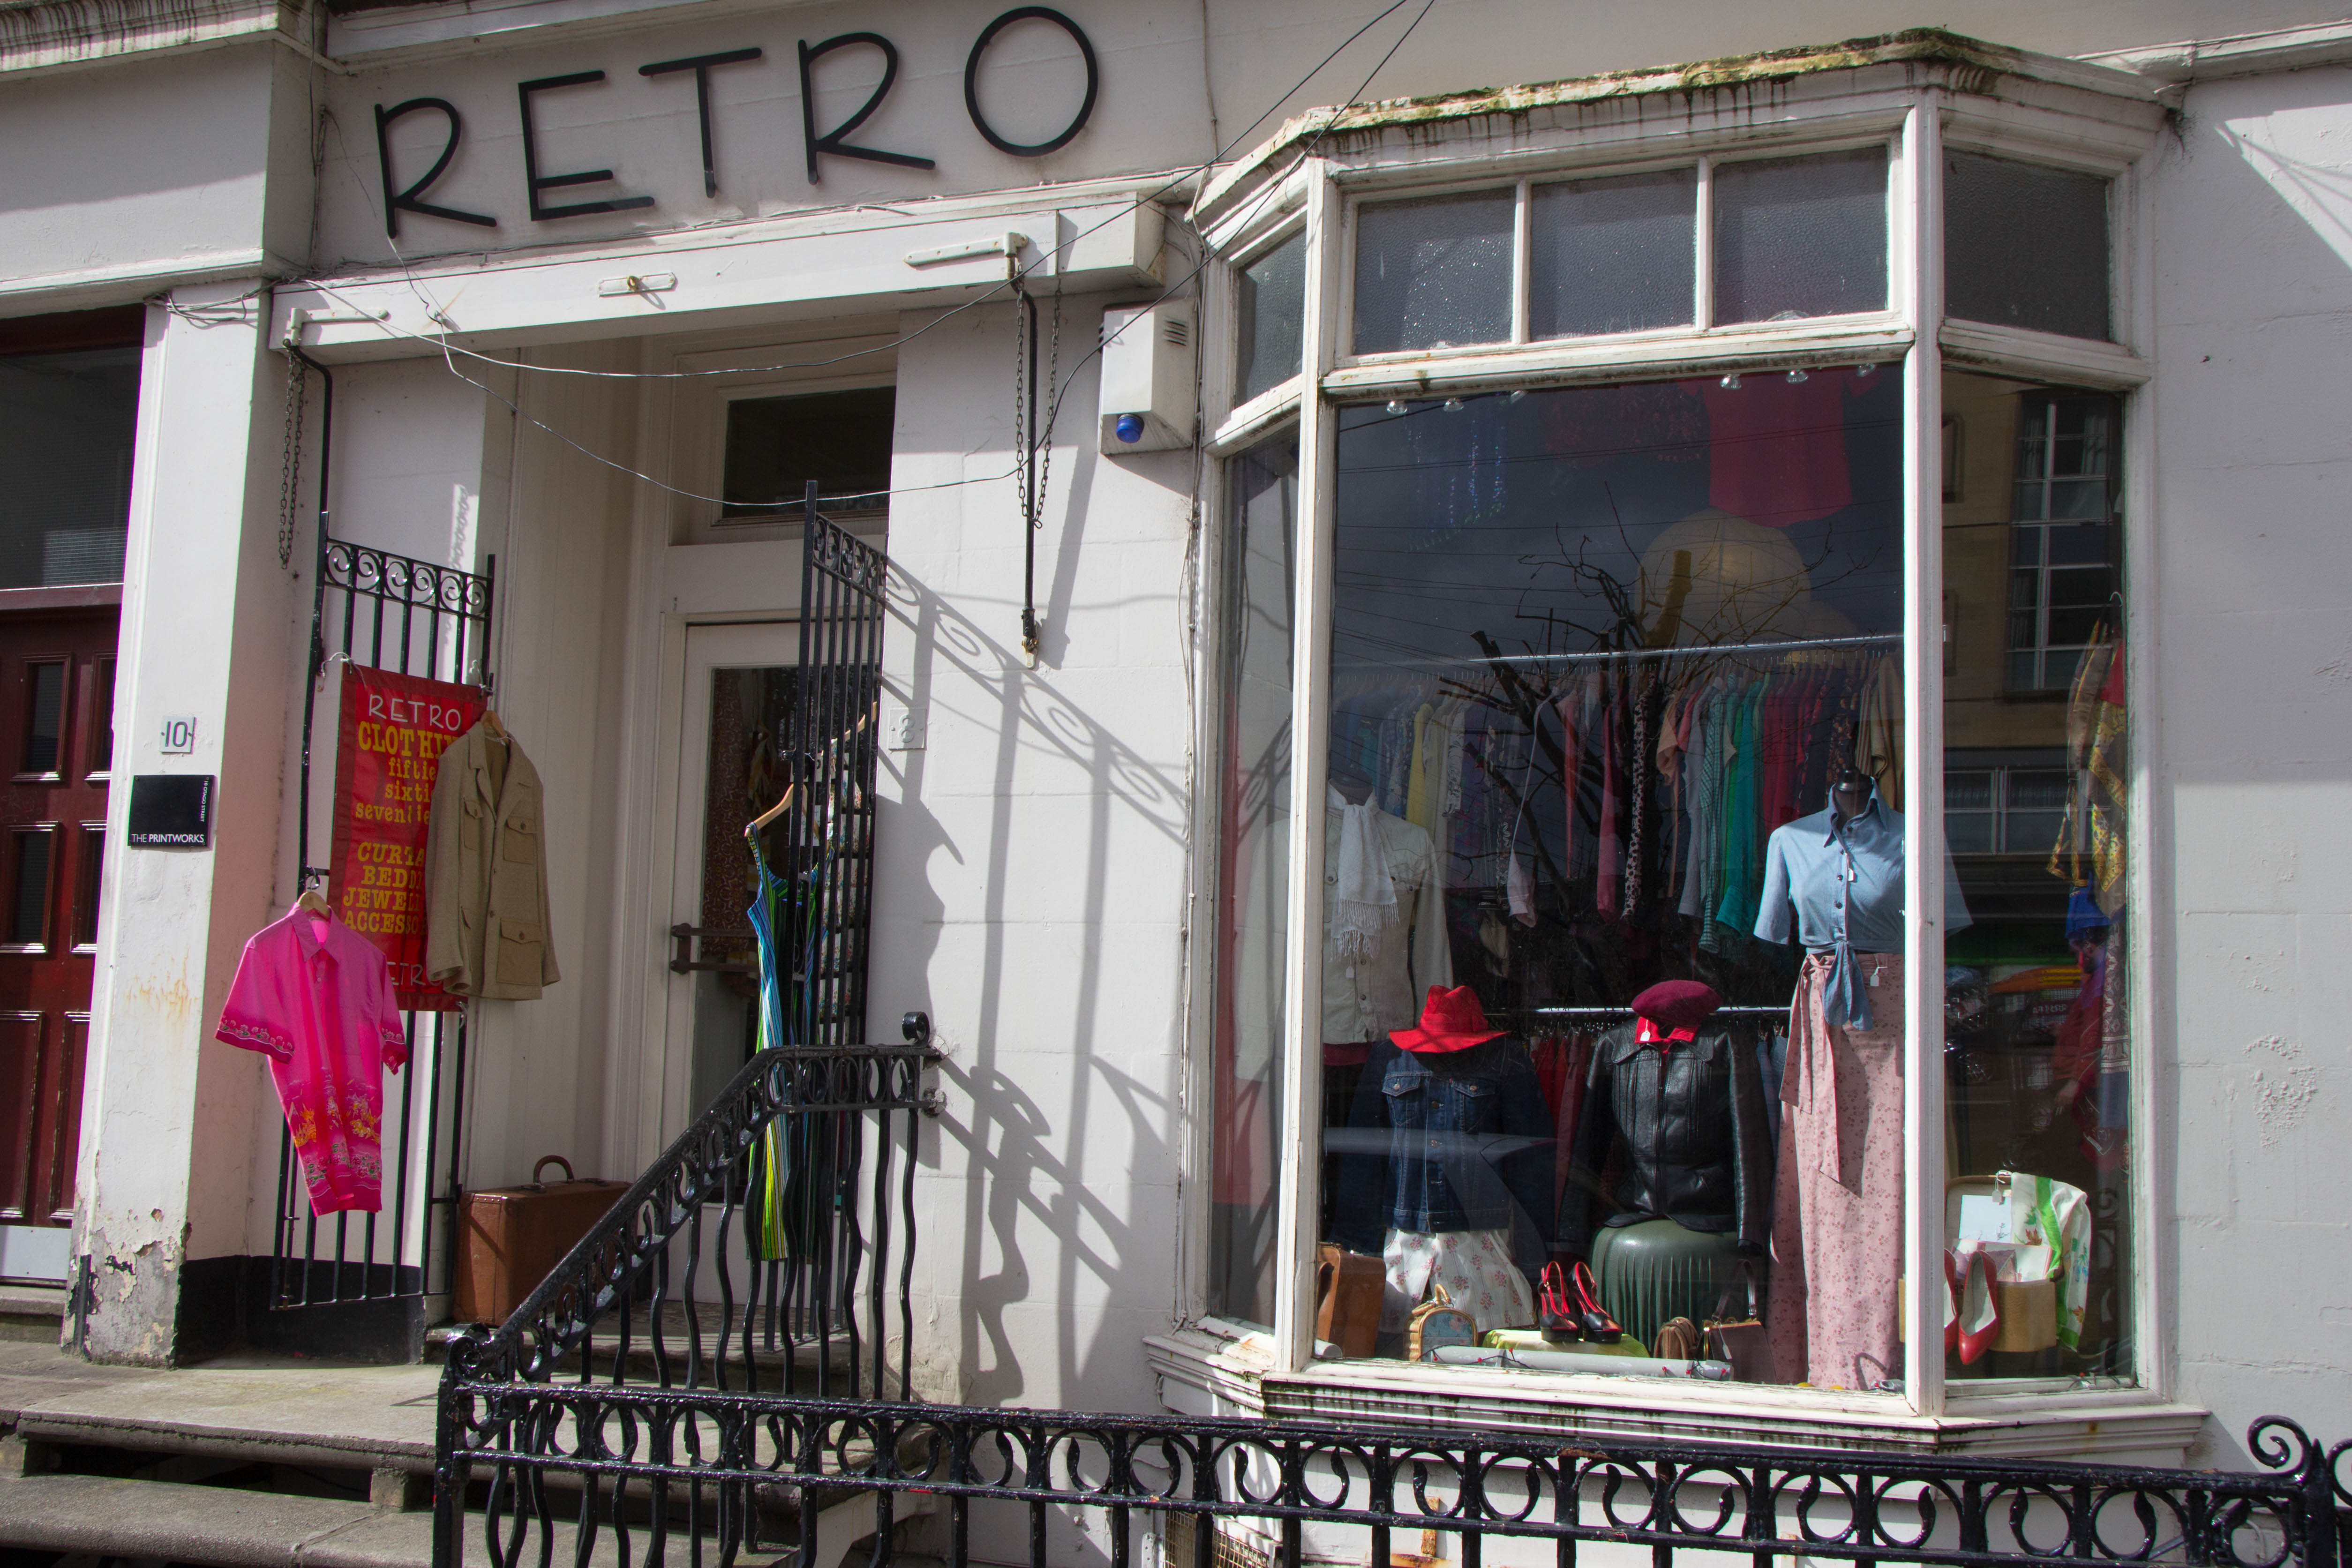 5 cool vintage shops in Glasgow - Retro